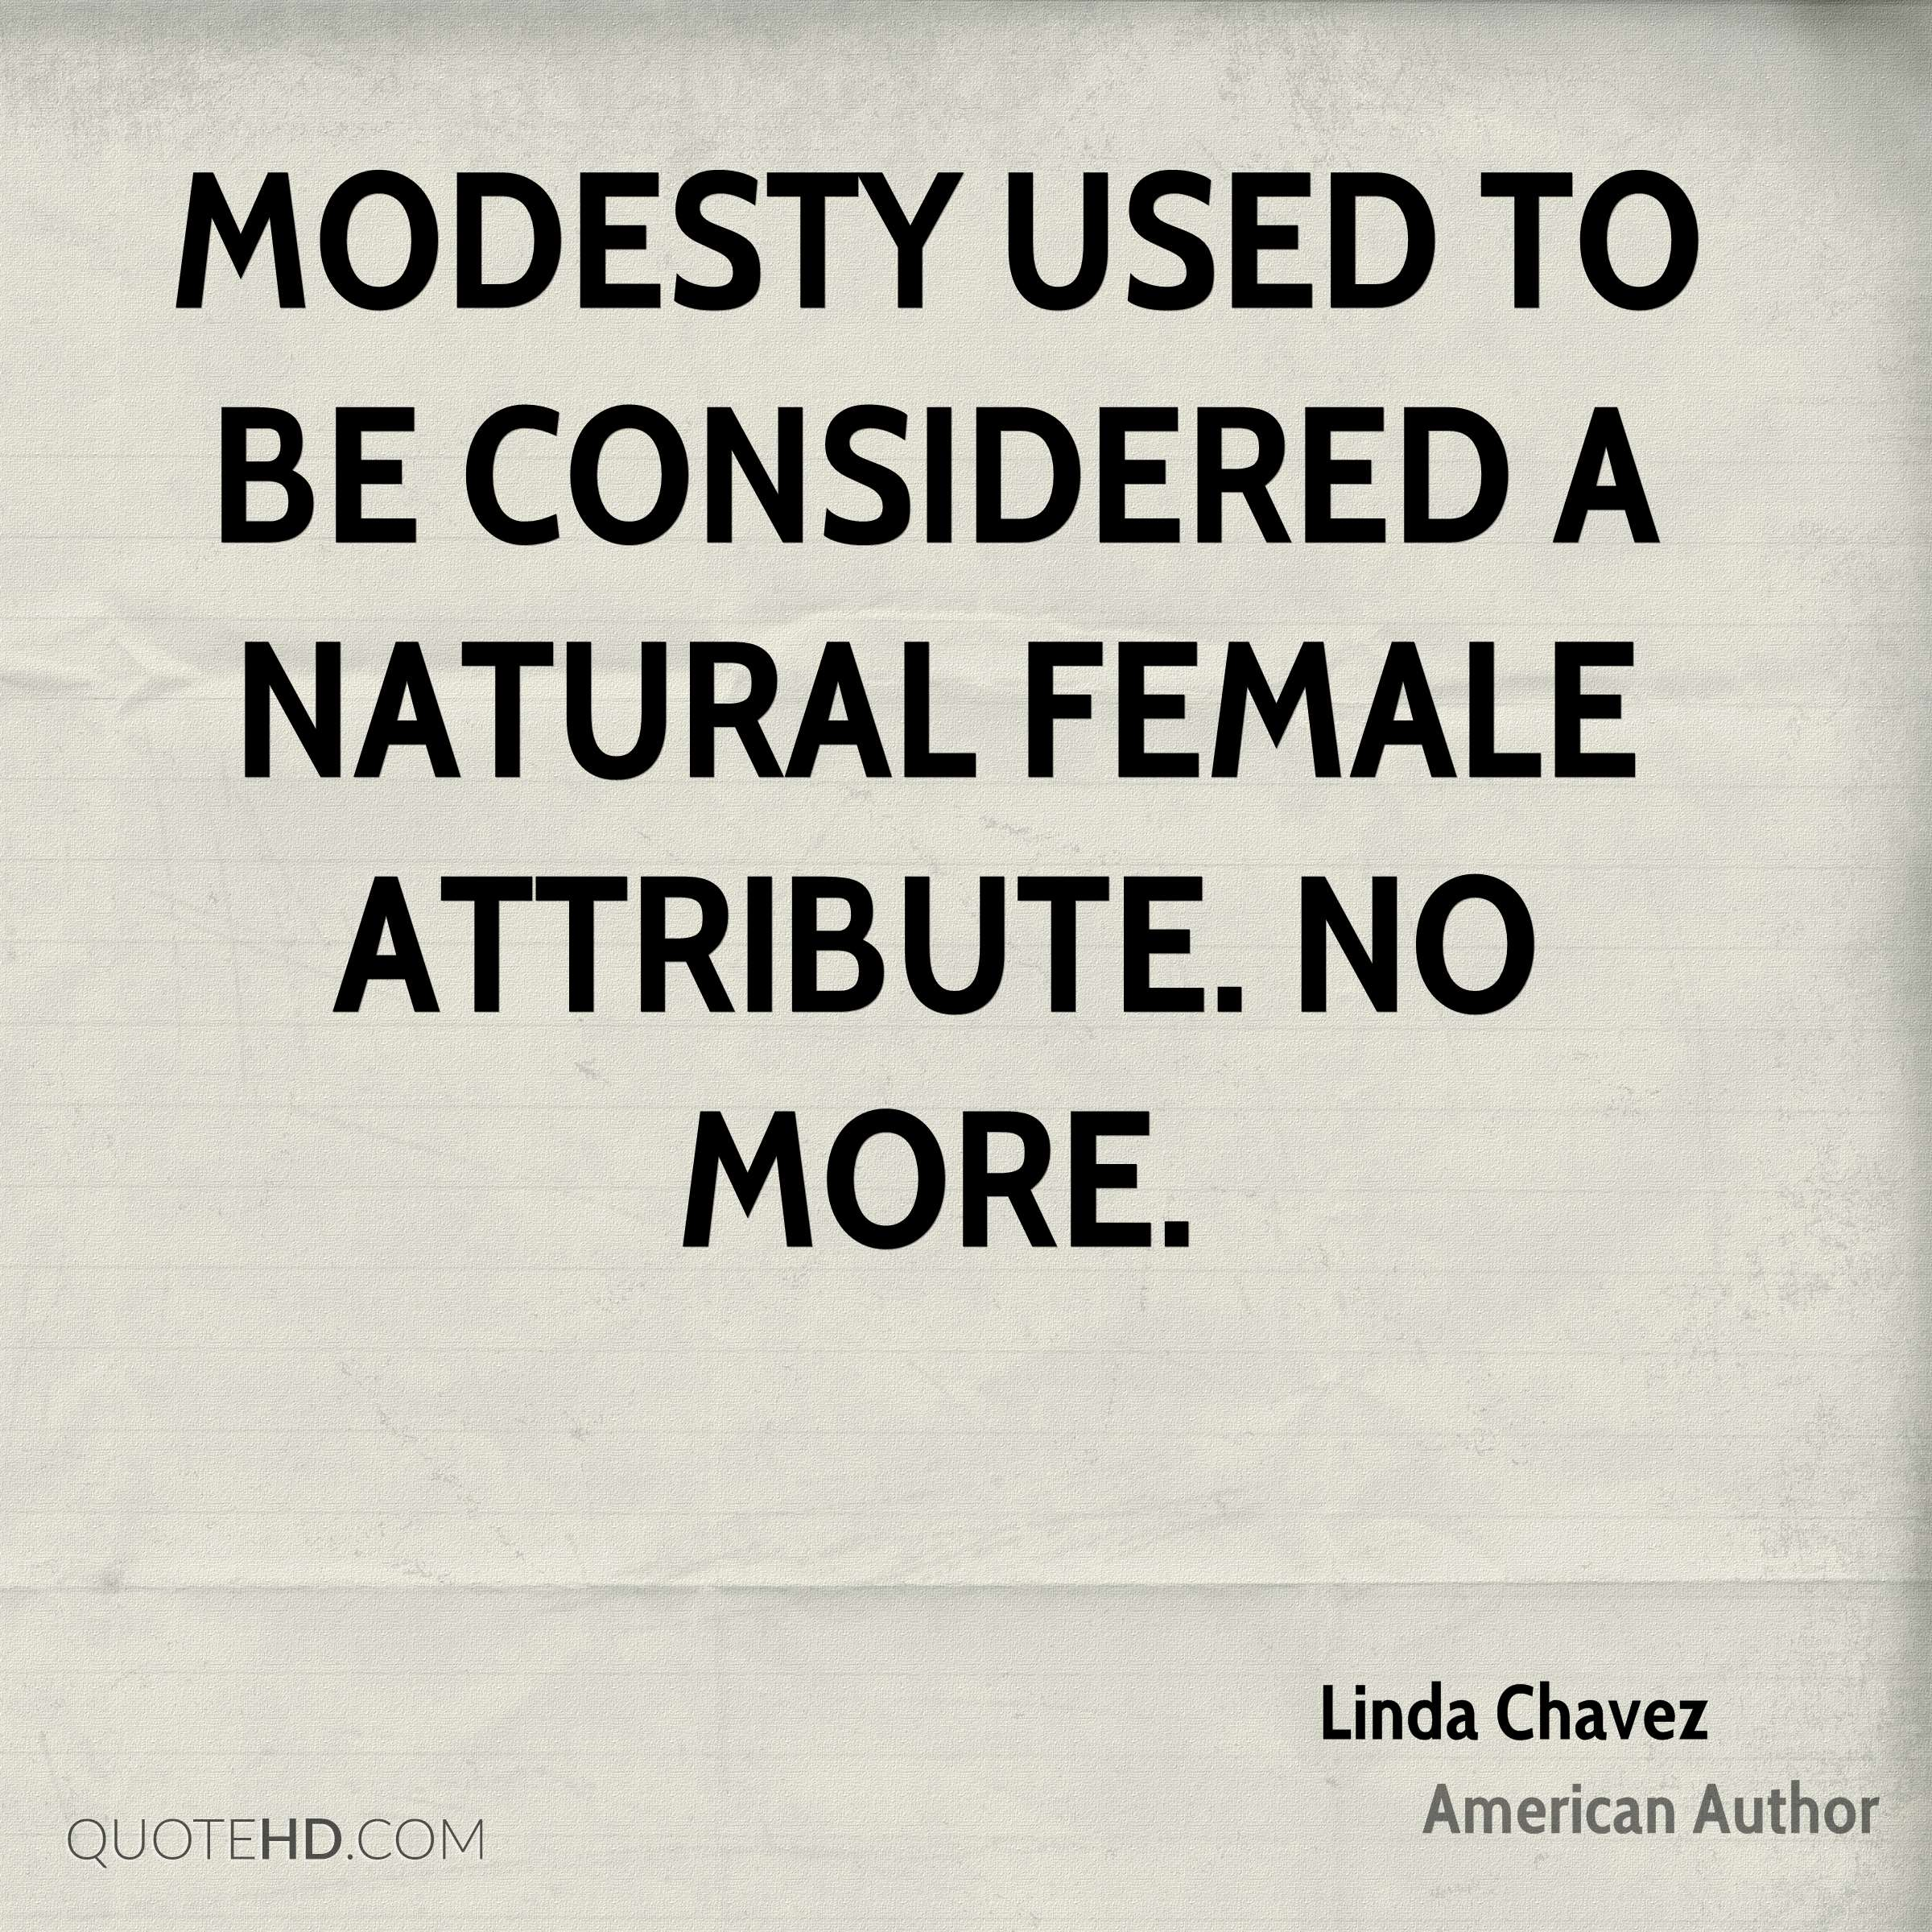 Modesty used to be considered a natural female attribute. No more.